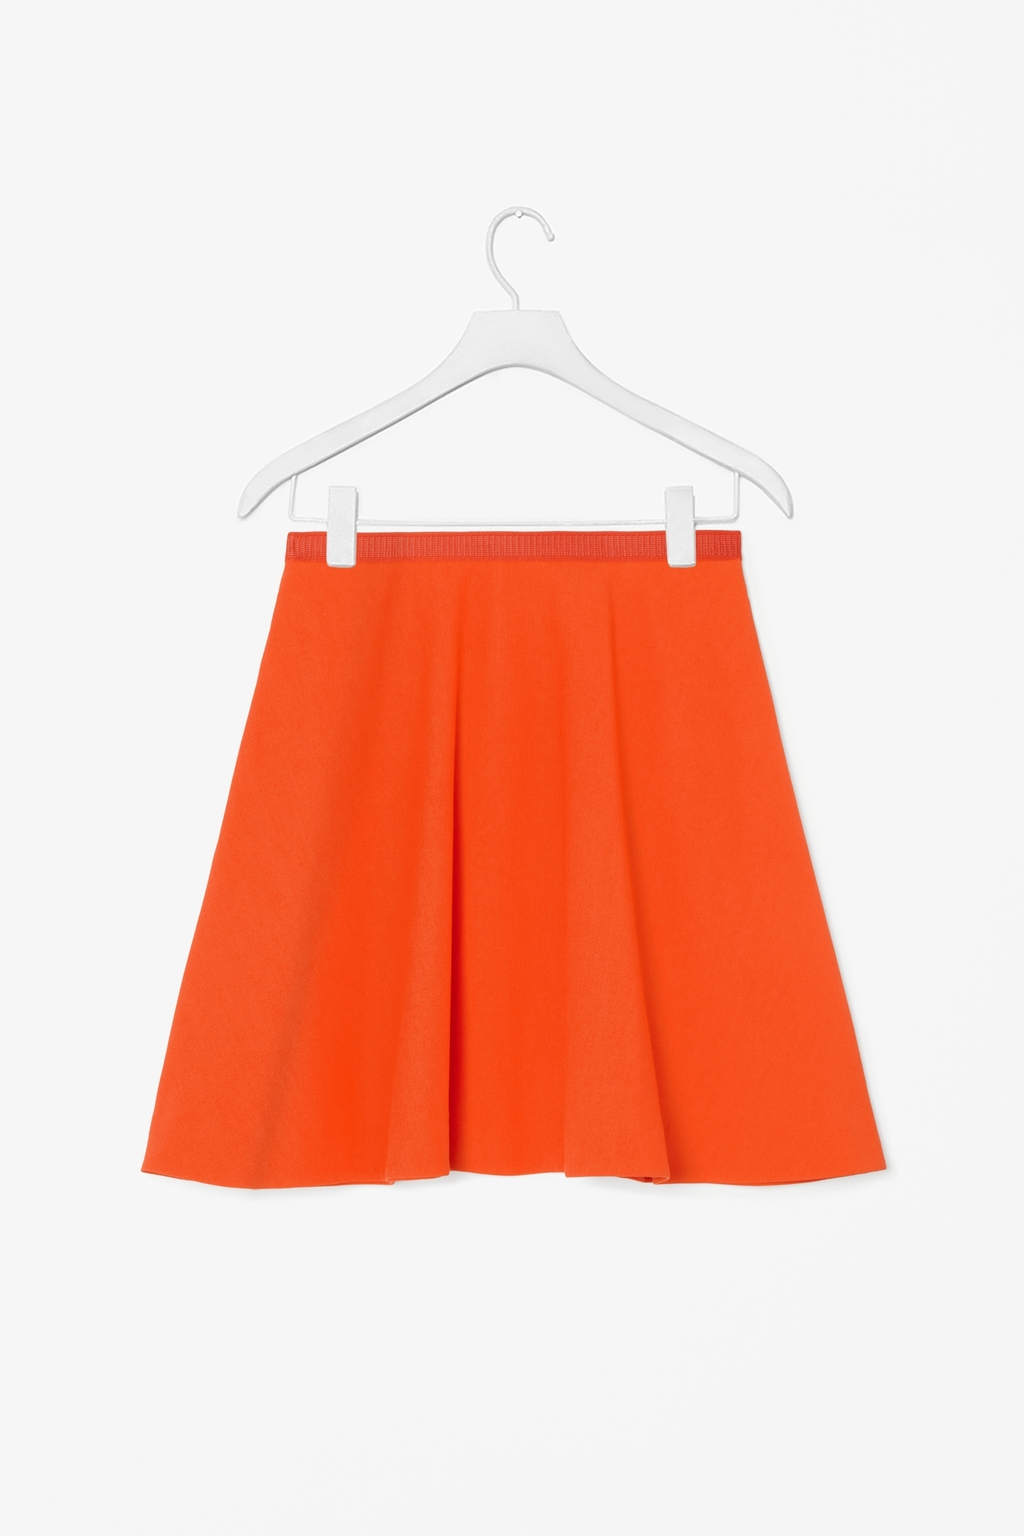 Flared Skirt - pattern: plain; fit: loose/voluminous; waist detail: elasticated waist; waist: high rise; predominant colour: bright orange; occasions: casual, creative work; length: just above the knee; style: a-line; hip detail: subtle/flattering hip detail; pattern type: fabric; texture group: other - light to midweight; fibres: viscose/rayon - mix; season: s/s 2014; wardrobe: highlight